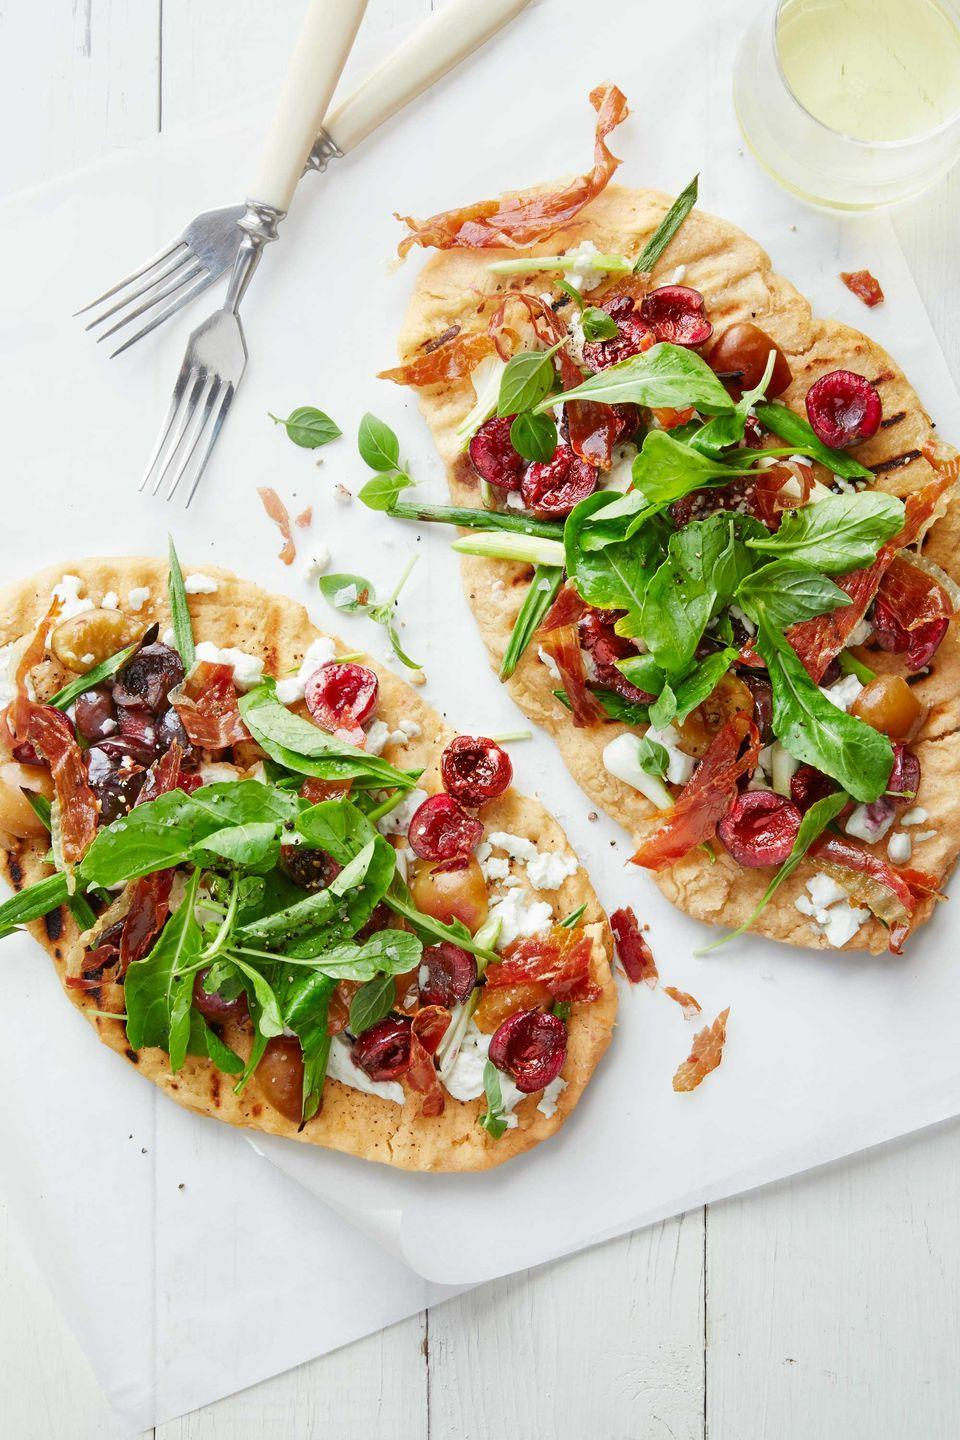 """<p>These crispy flatbreads achieve the perfect combo of salty, tangy and sweet in every bite.</p><p><strong><a href=""""https://www.countryliving.com/food-drinks/recipes/a38953/cherry-prosciutto-grilled-pizzas-recipe/"""" rel=""""nofollow noopener"""" target=""""_blank"""" data-ylk=""""slk:Get the recipe"""" class=""""link rapid-noclick-resp"""">Get the recipe</a>.</strong></p>"""